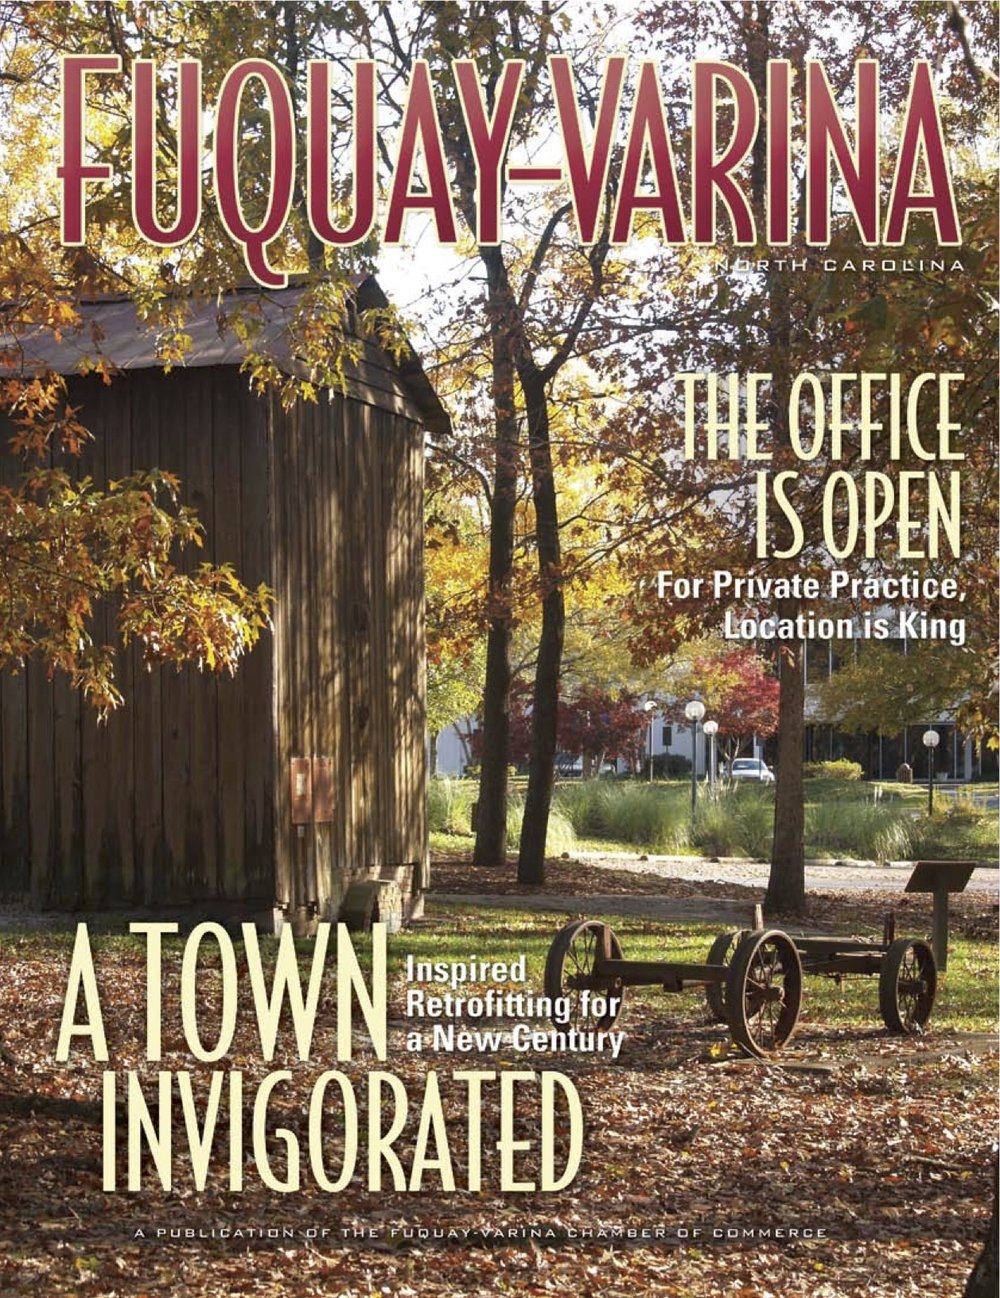 Fuquay-Varina 2010 low res.jpg